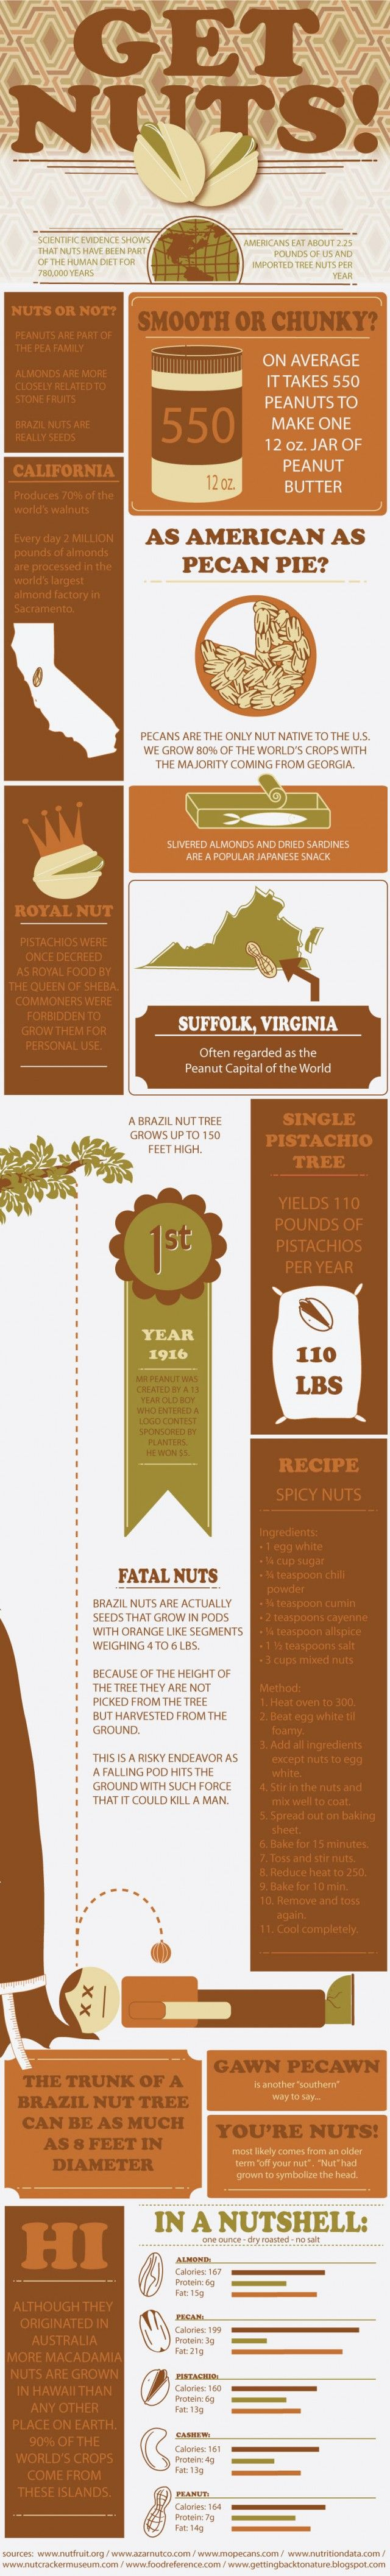 This is a great infographic about nuts, complete with a sweet/spicy mixed nut recipe! Get Nuts! Daily Infographic